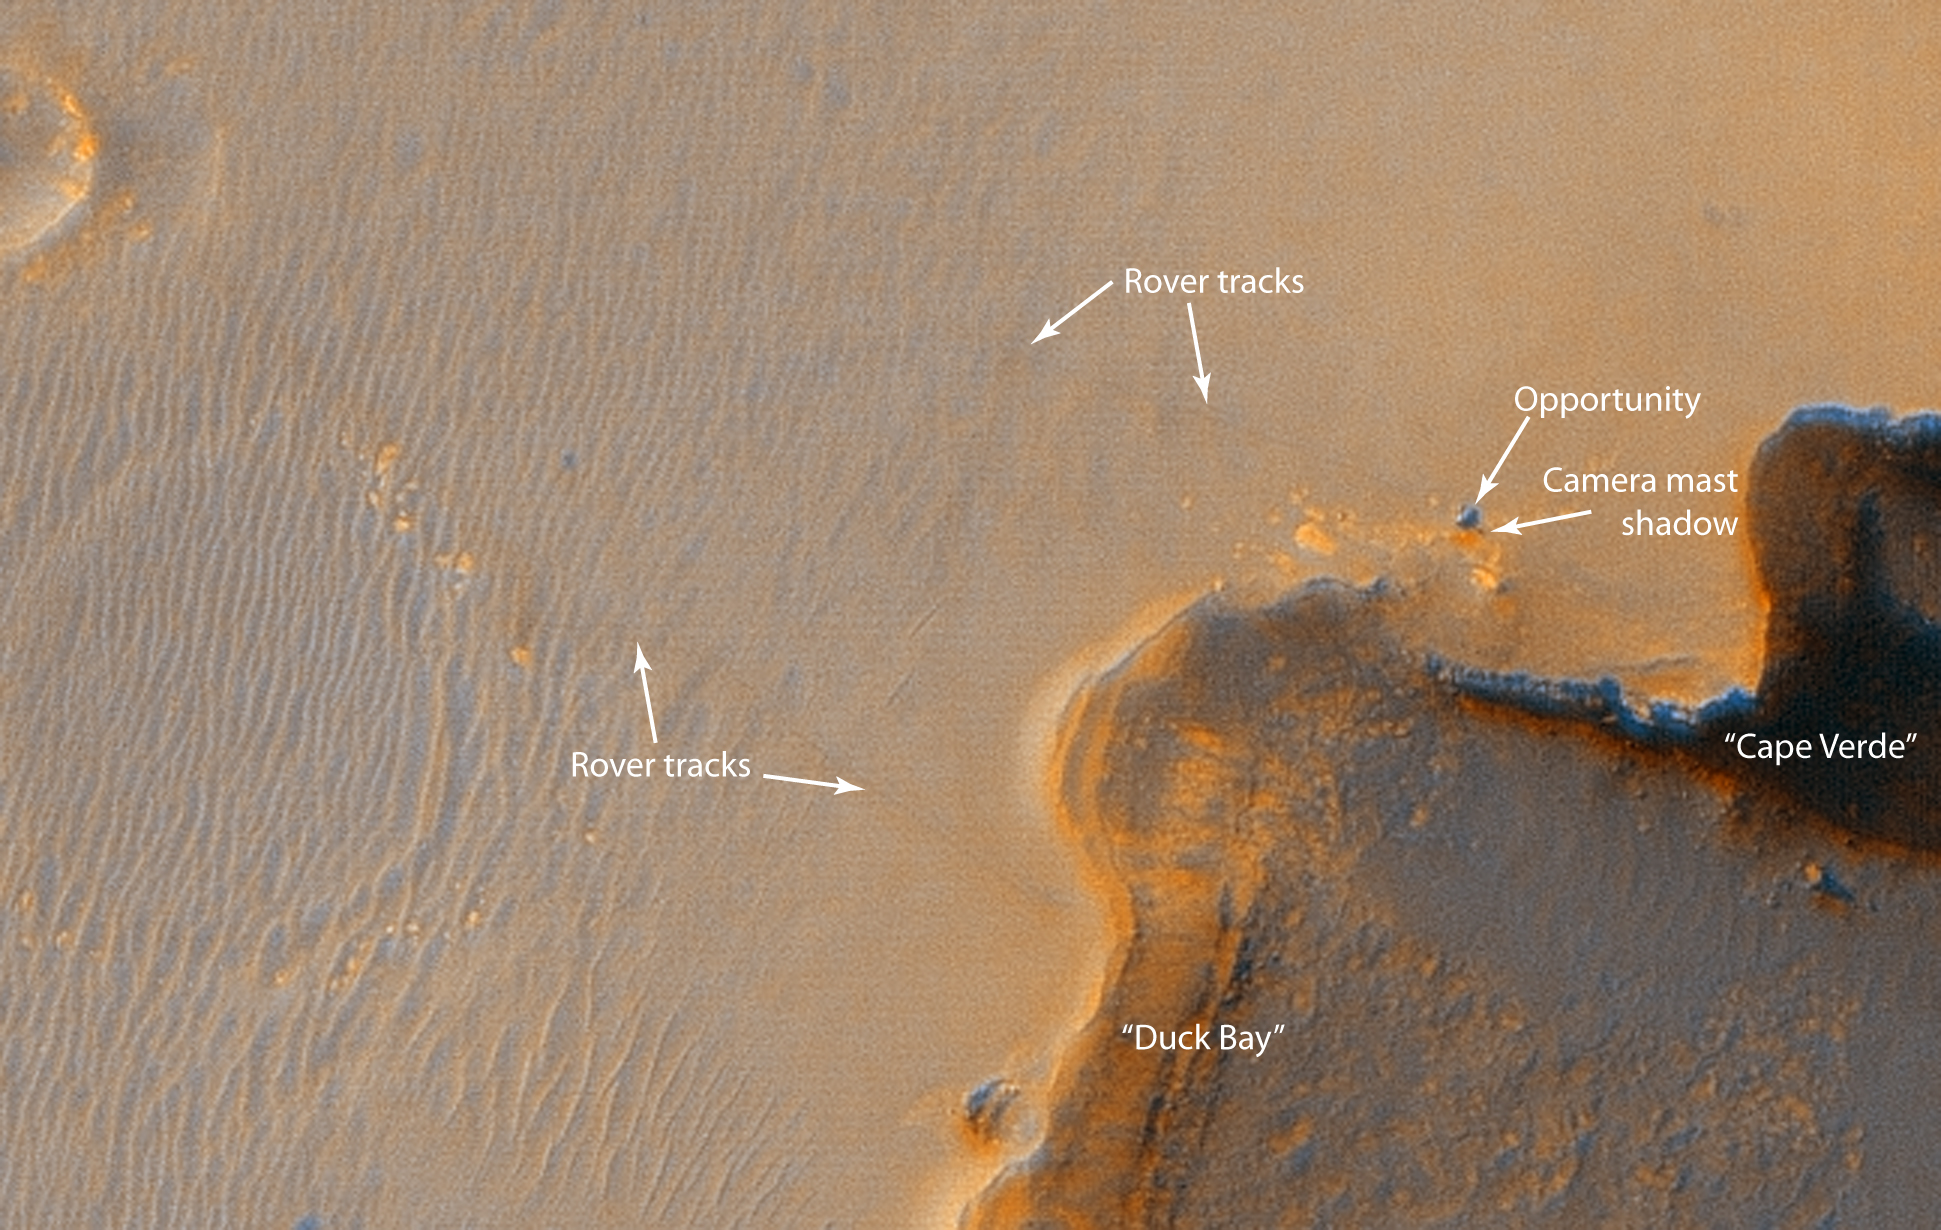 https://i1.wp.com/mars.jpl.nasa.gov/mro/gallery/press/20061006c/rover-color-close-up2-annot.jpg